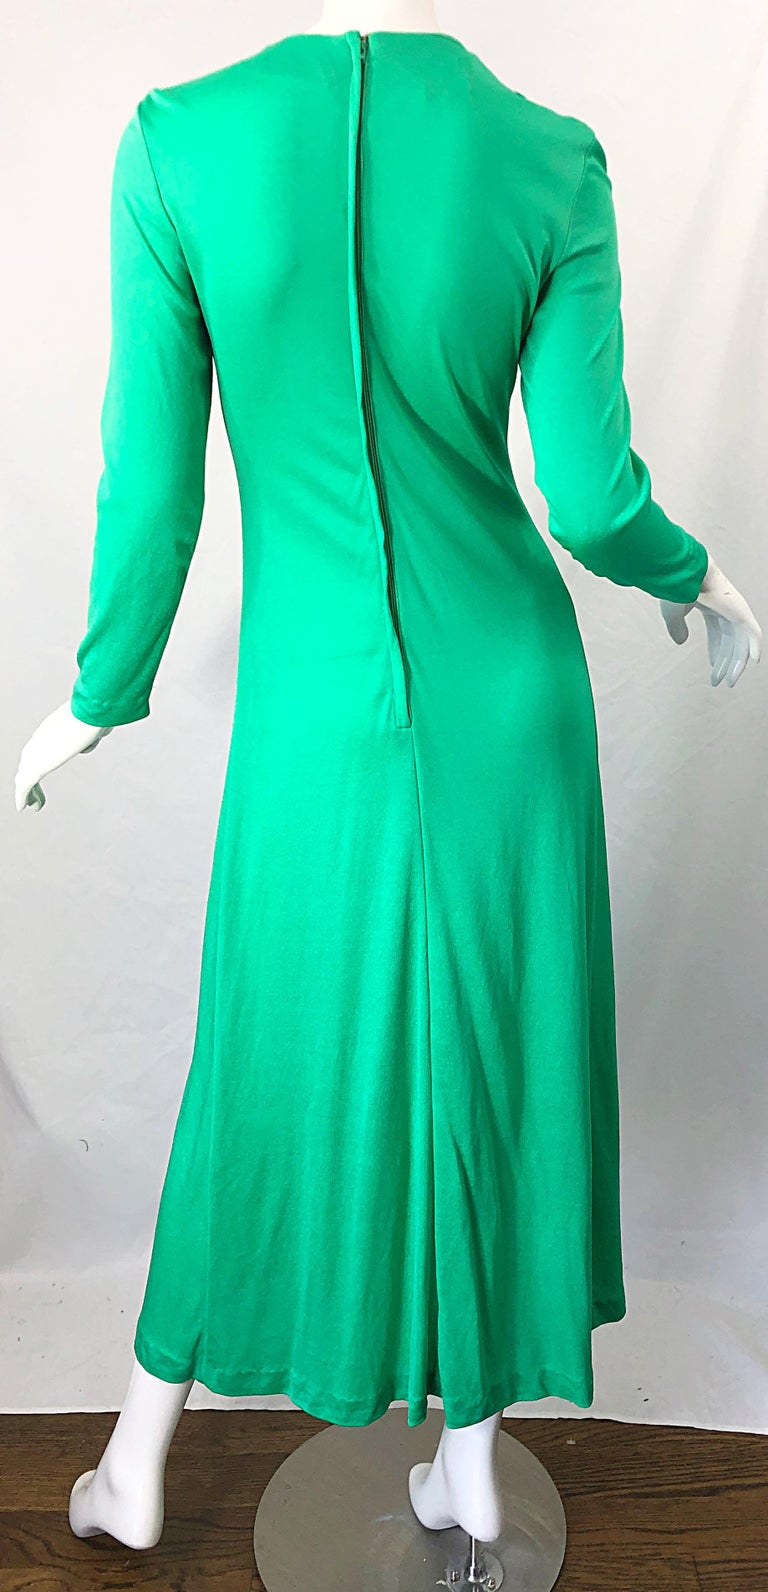 1970s Fredrick's of Hollywood Kelly Green Vintage Jersey 70s Maxi Dress For Sale 4